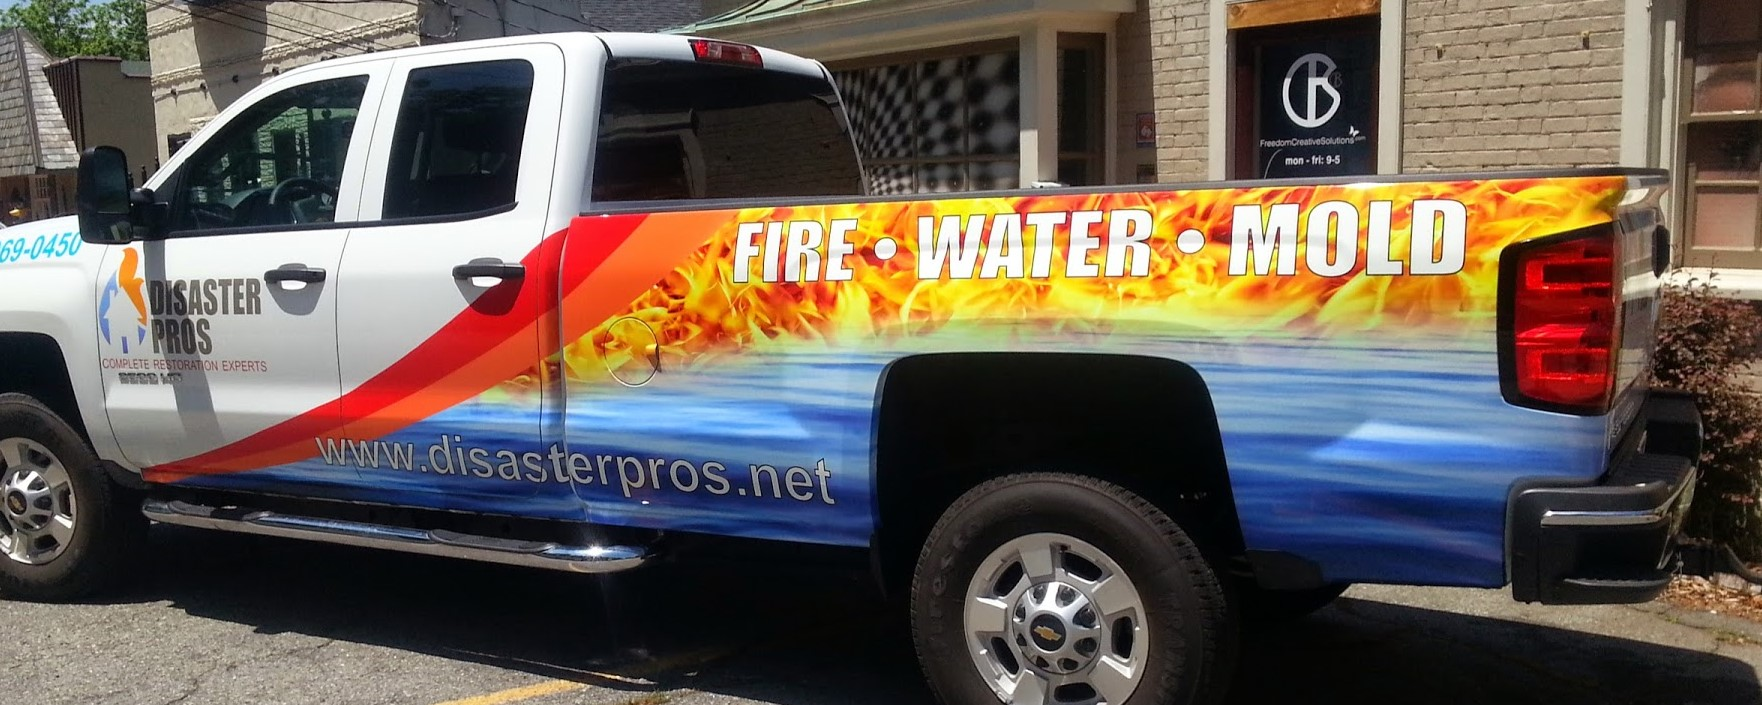 disaster_pros_fire_water_mold_complete_restoration_experts__back_right_angle_view_vehicle_wrap